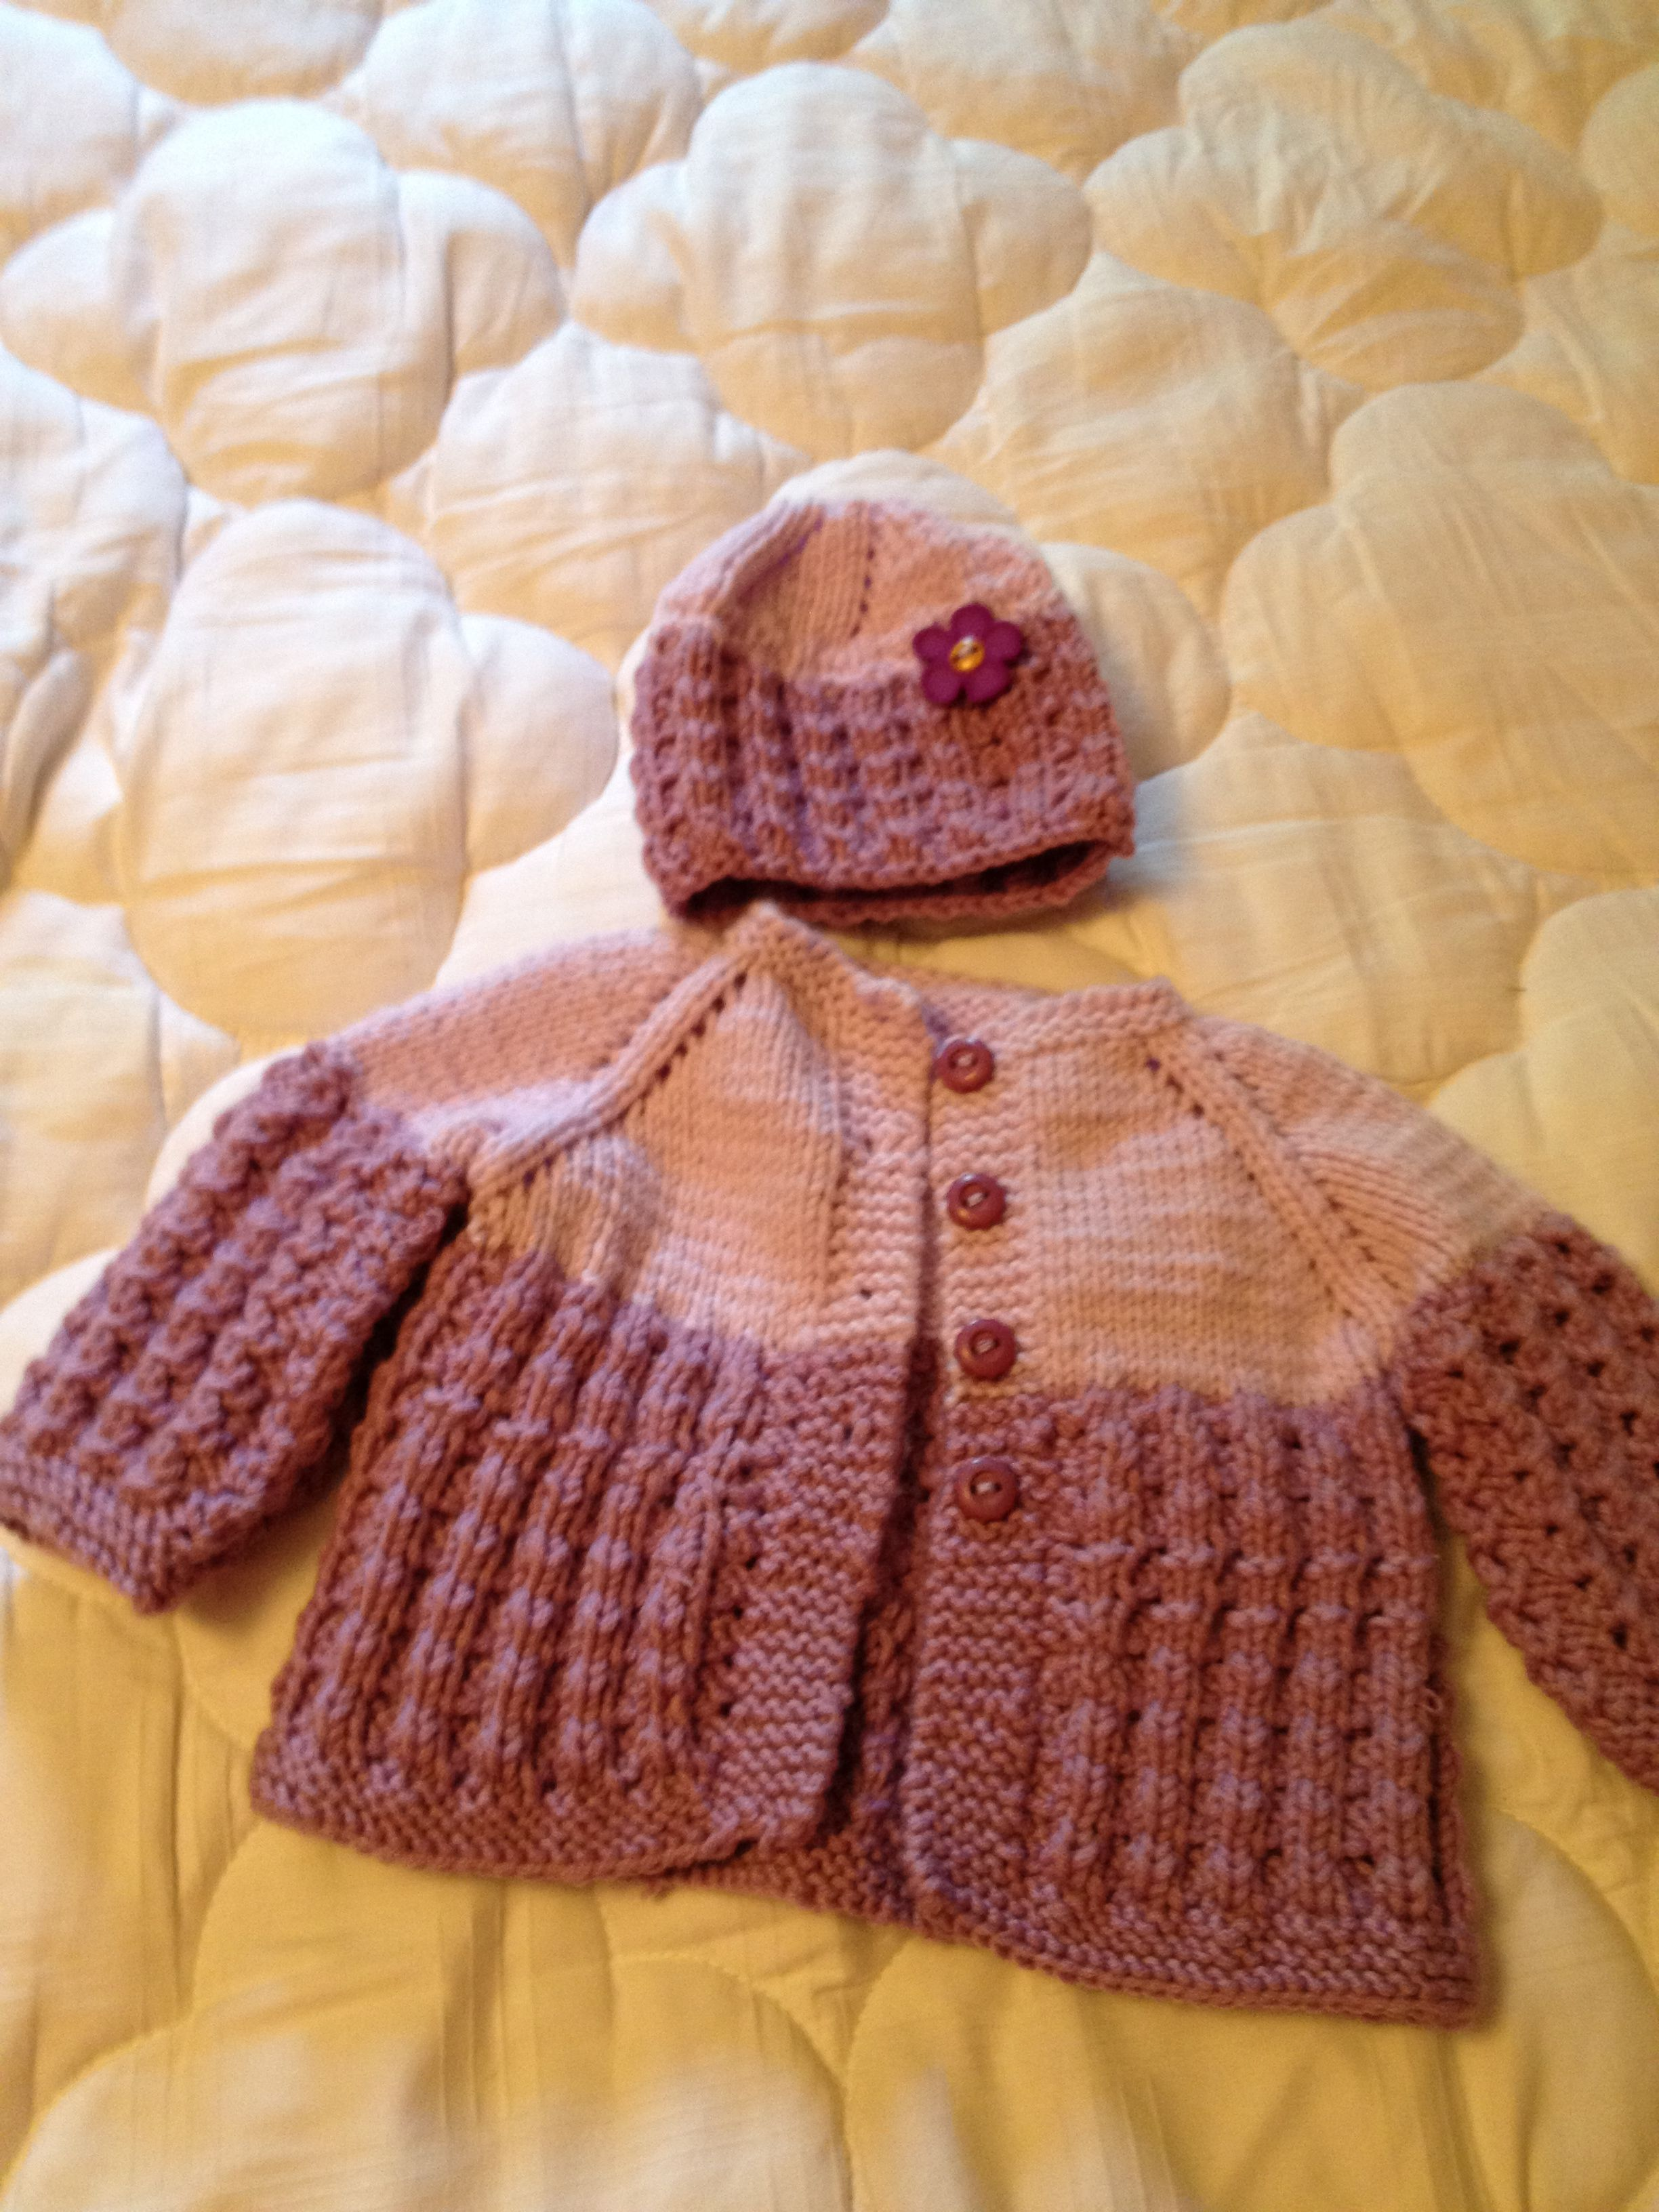 Matching sweater and hat made for new baby.